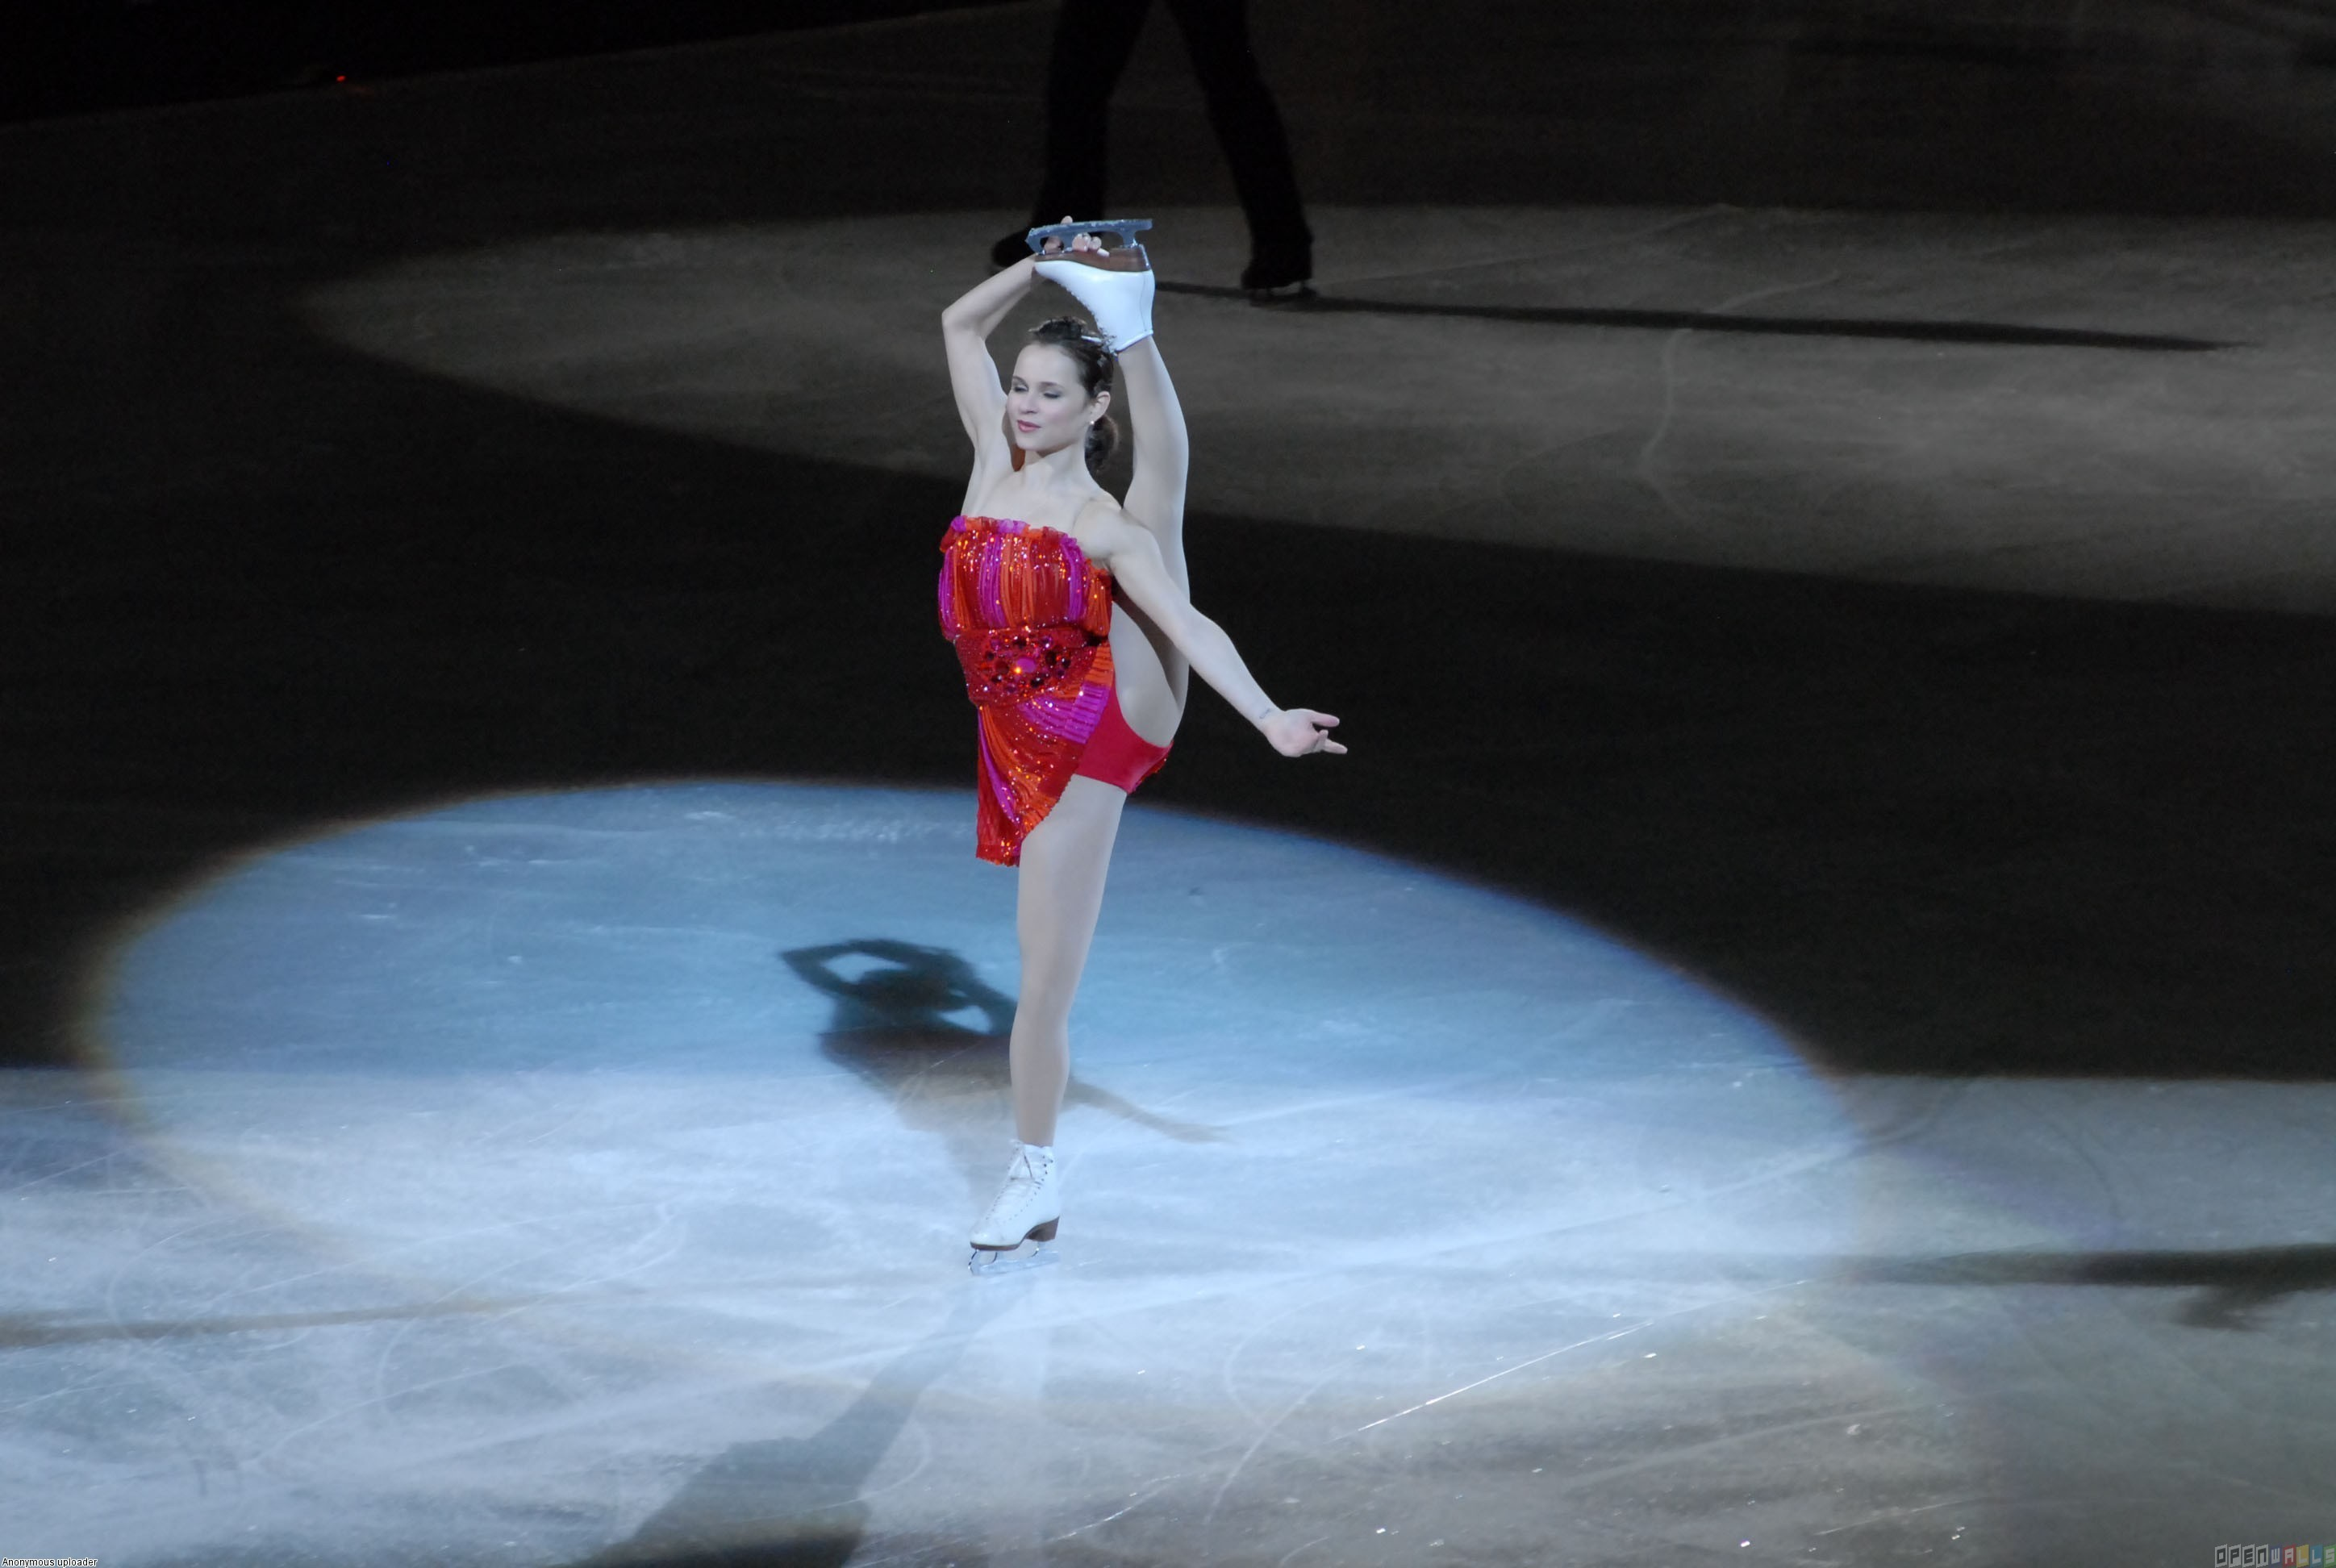 Res: 2896x1944, figure skating ...